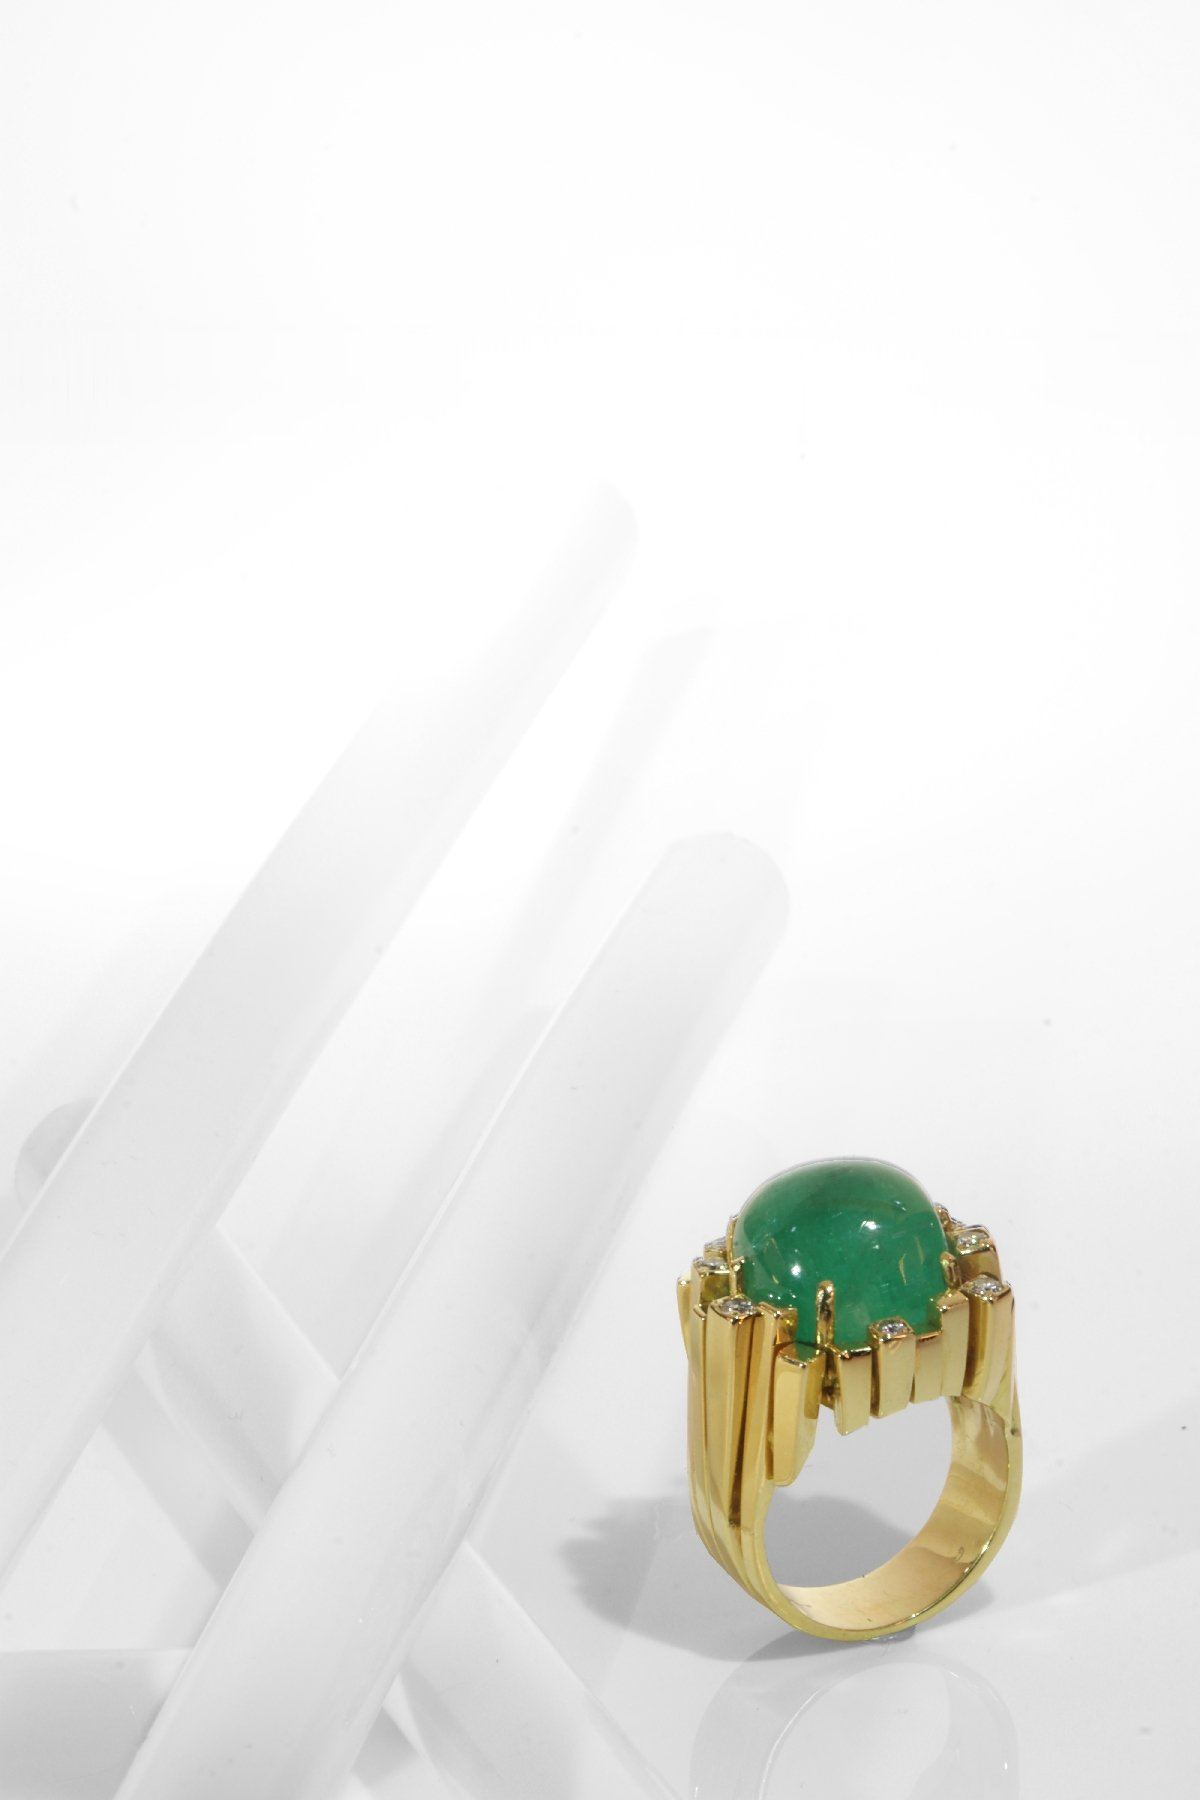 Click the picture to get to see this Seventies Modernistic Artist Design ring with large emerald and diamonds.